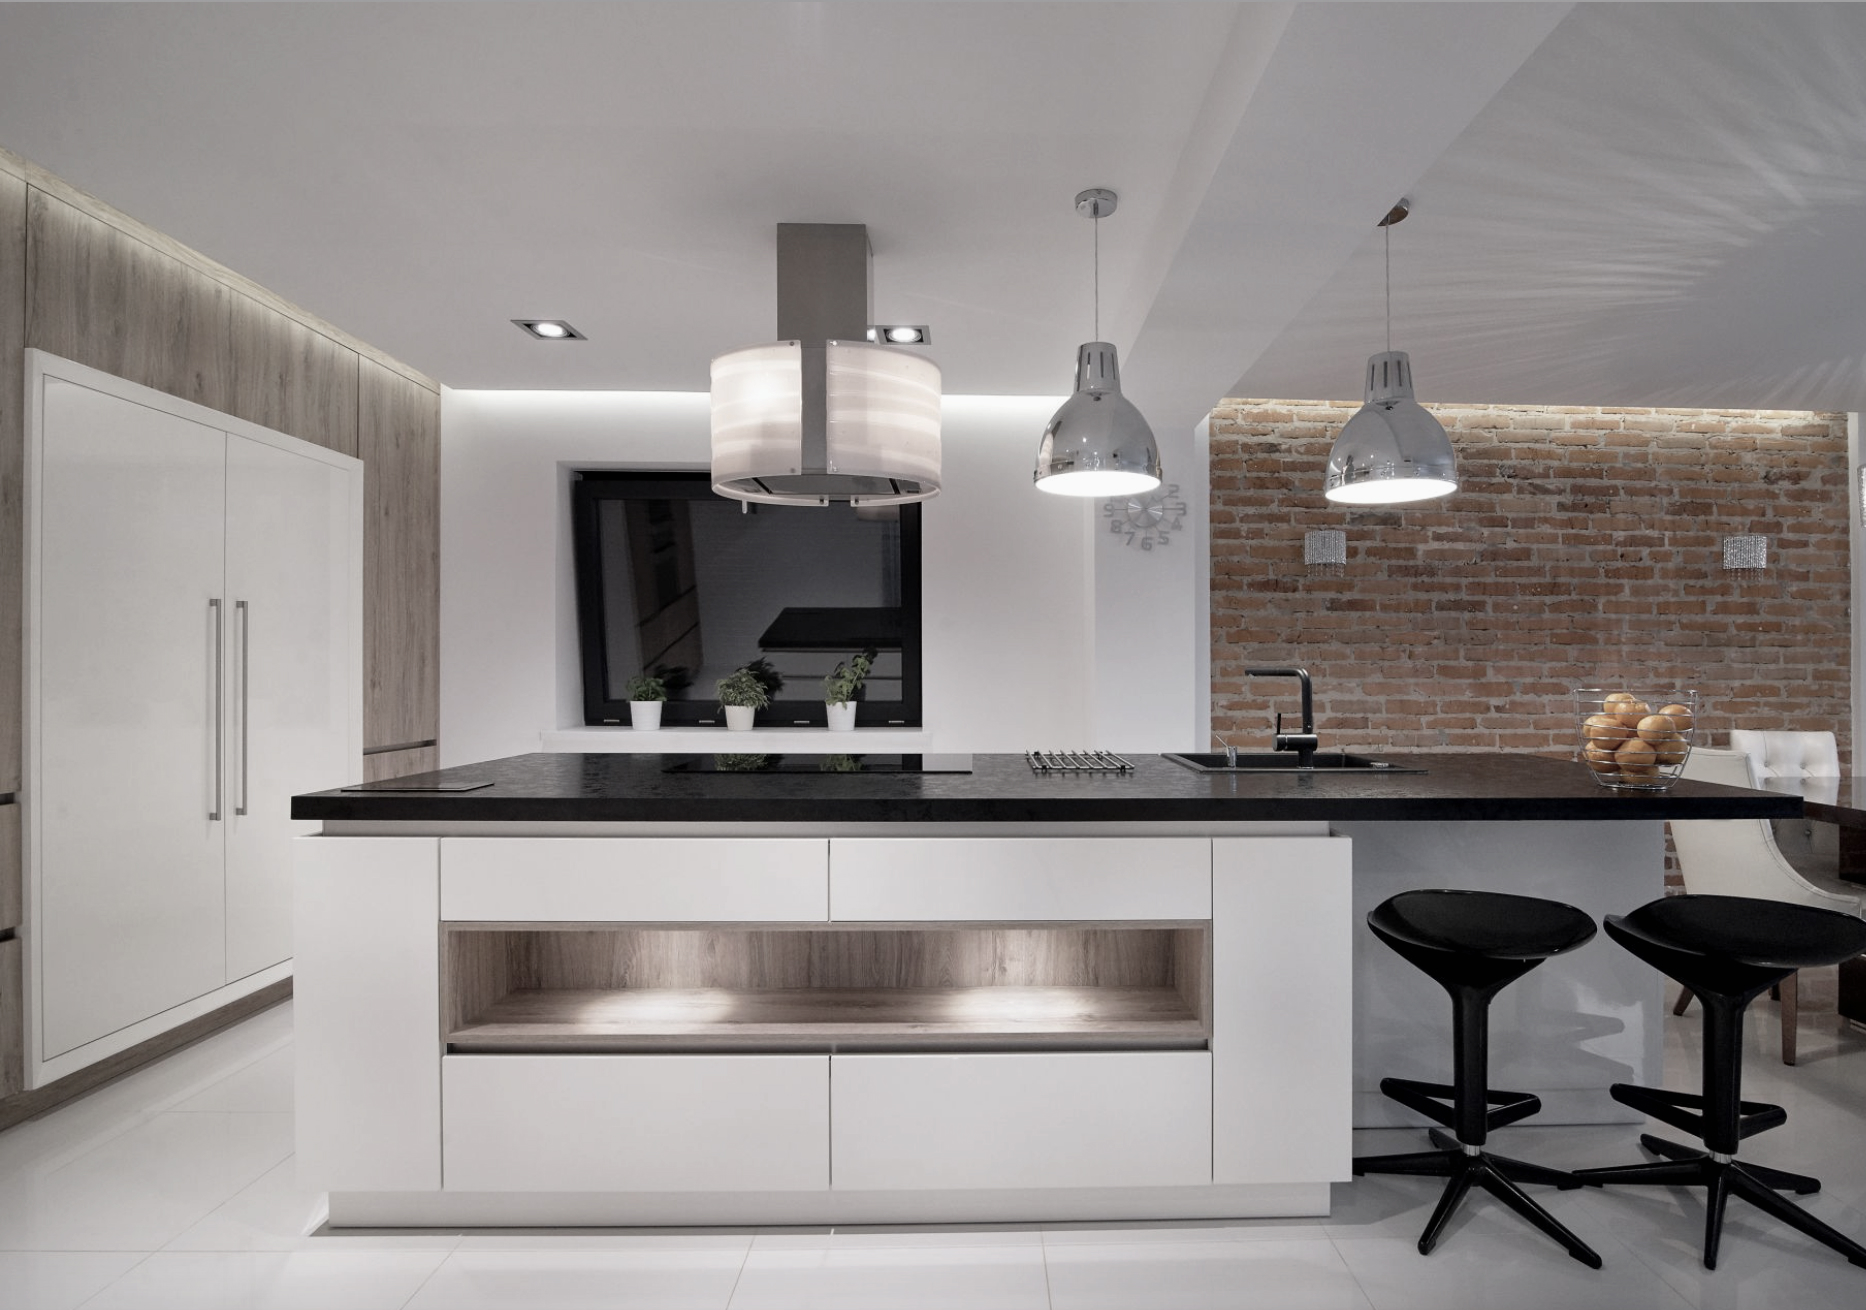 KITCHEN RE-DESIGN - We work on kitchen projects large or small. We can help you design and install your new kitchen and project manage any building works, plastering, tiling, bespoke joinery and installation from the start to finish. We create kitchens that are aesthetically pleasing and functional for your requirements. Contact us to book a complimentary design consultation.